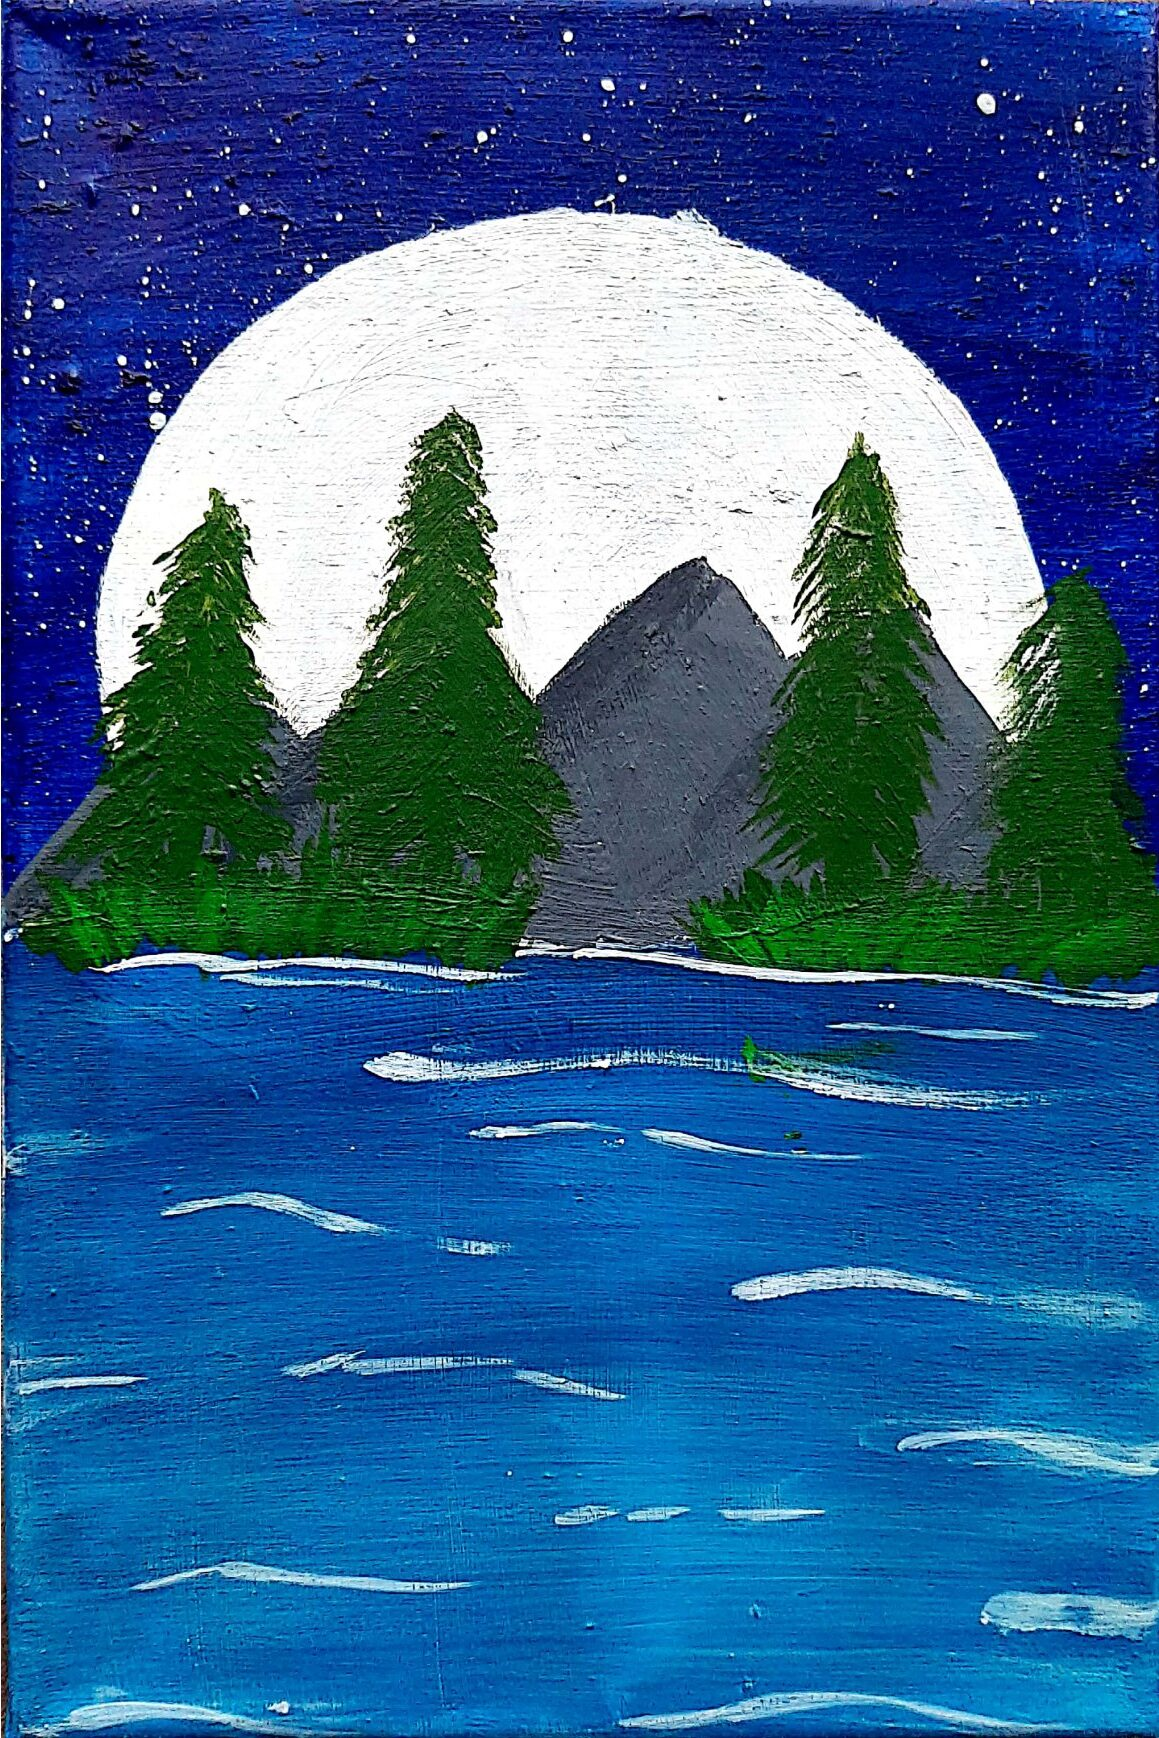 Night Sky with Mountains by Thabitha Sharon Simson